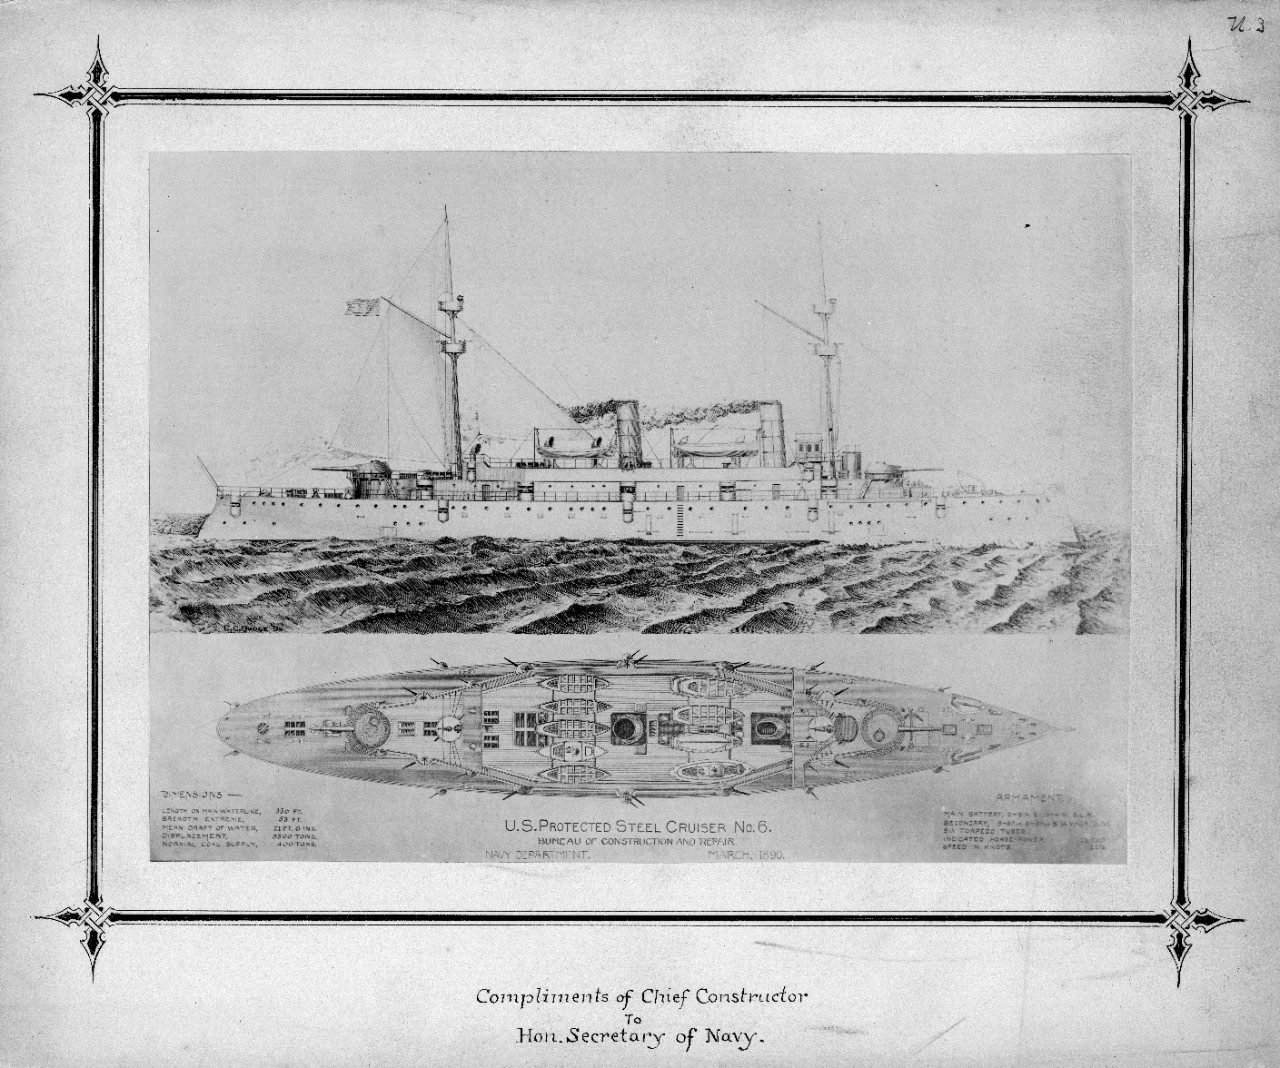 Six prints of Naval Constructor's drawings mounted on hard cardboard with gilded edges. Donated by the Naval Historical Foundation, original donor unknown. Drawings presented to the Secretary of the Navy by the Chief Constructor of the U.S. Navy, about 1880-1890.